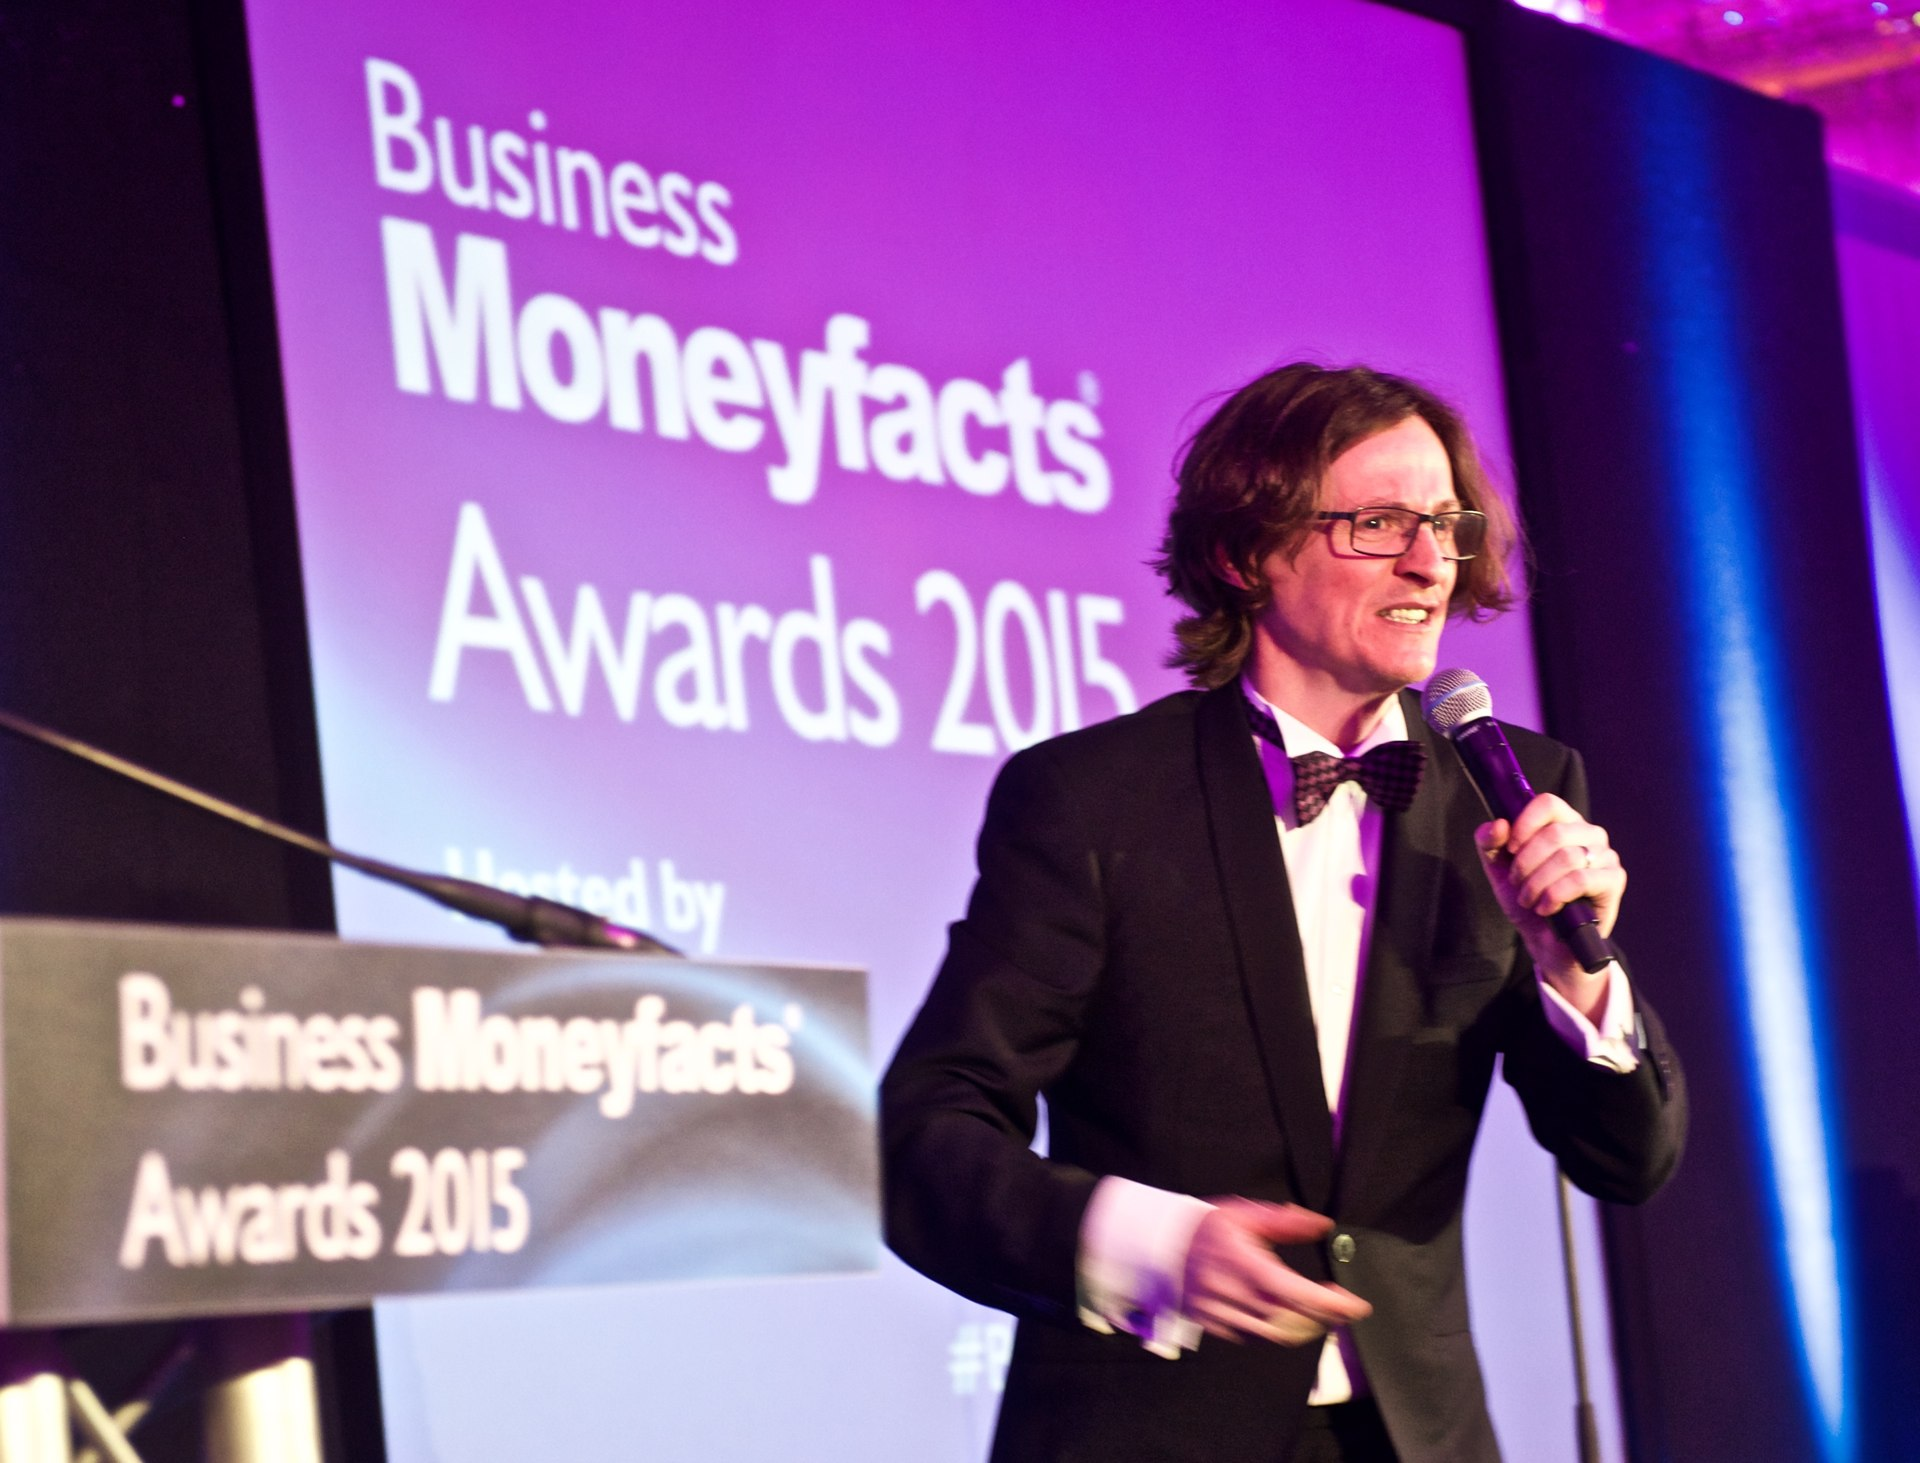 Ed Byrnes At The BMF Awards 2015